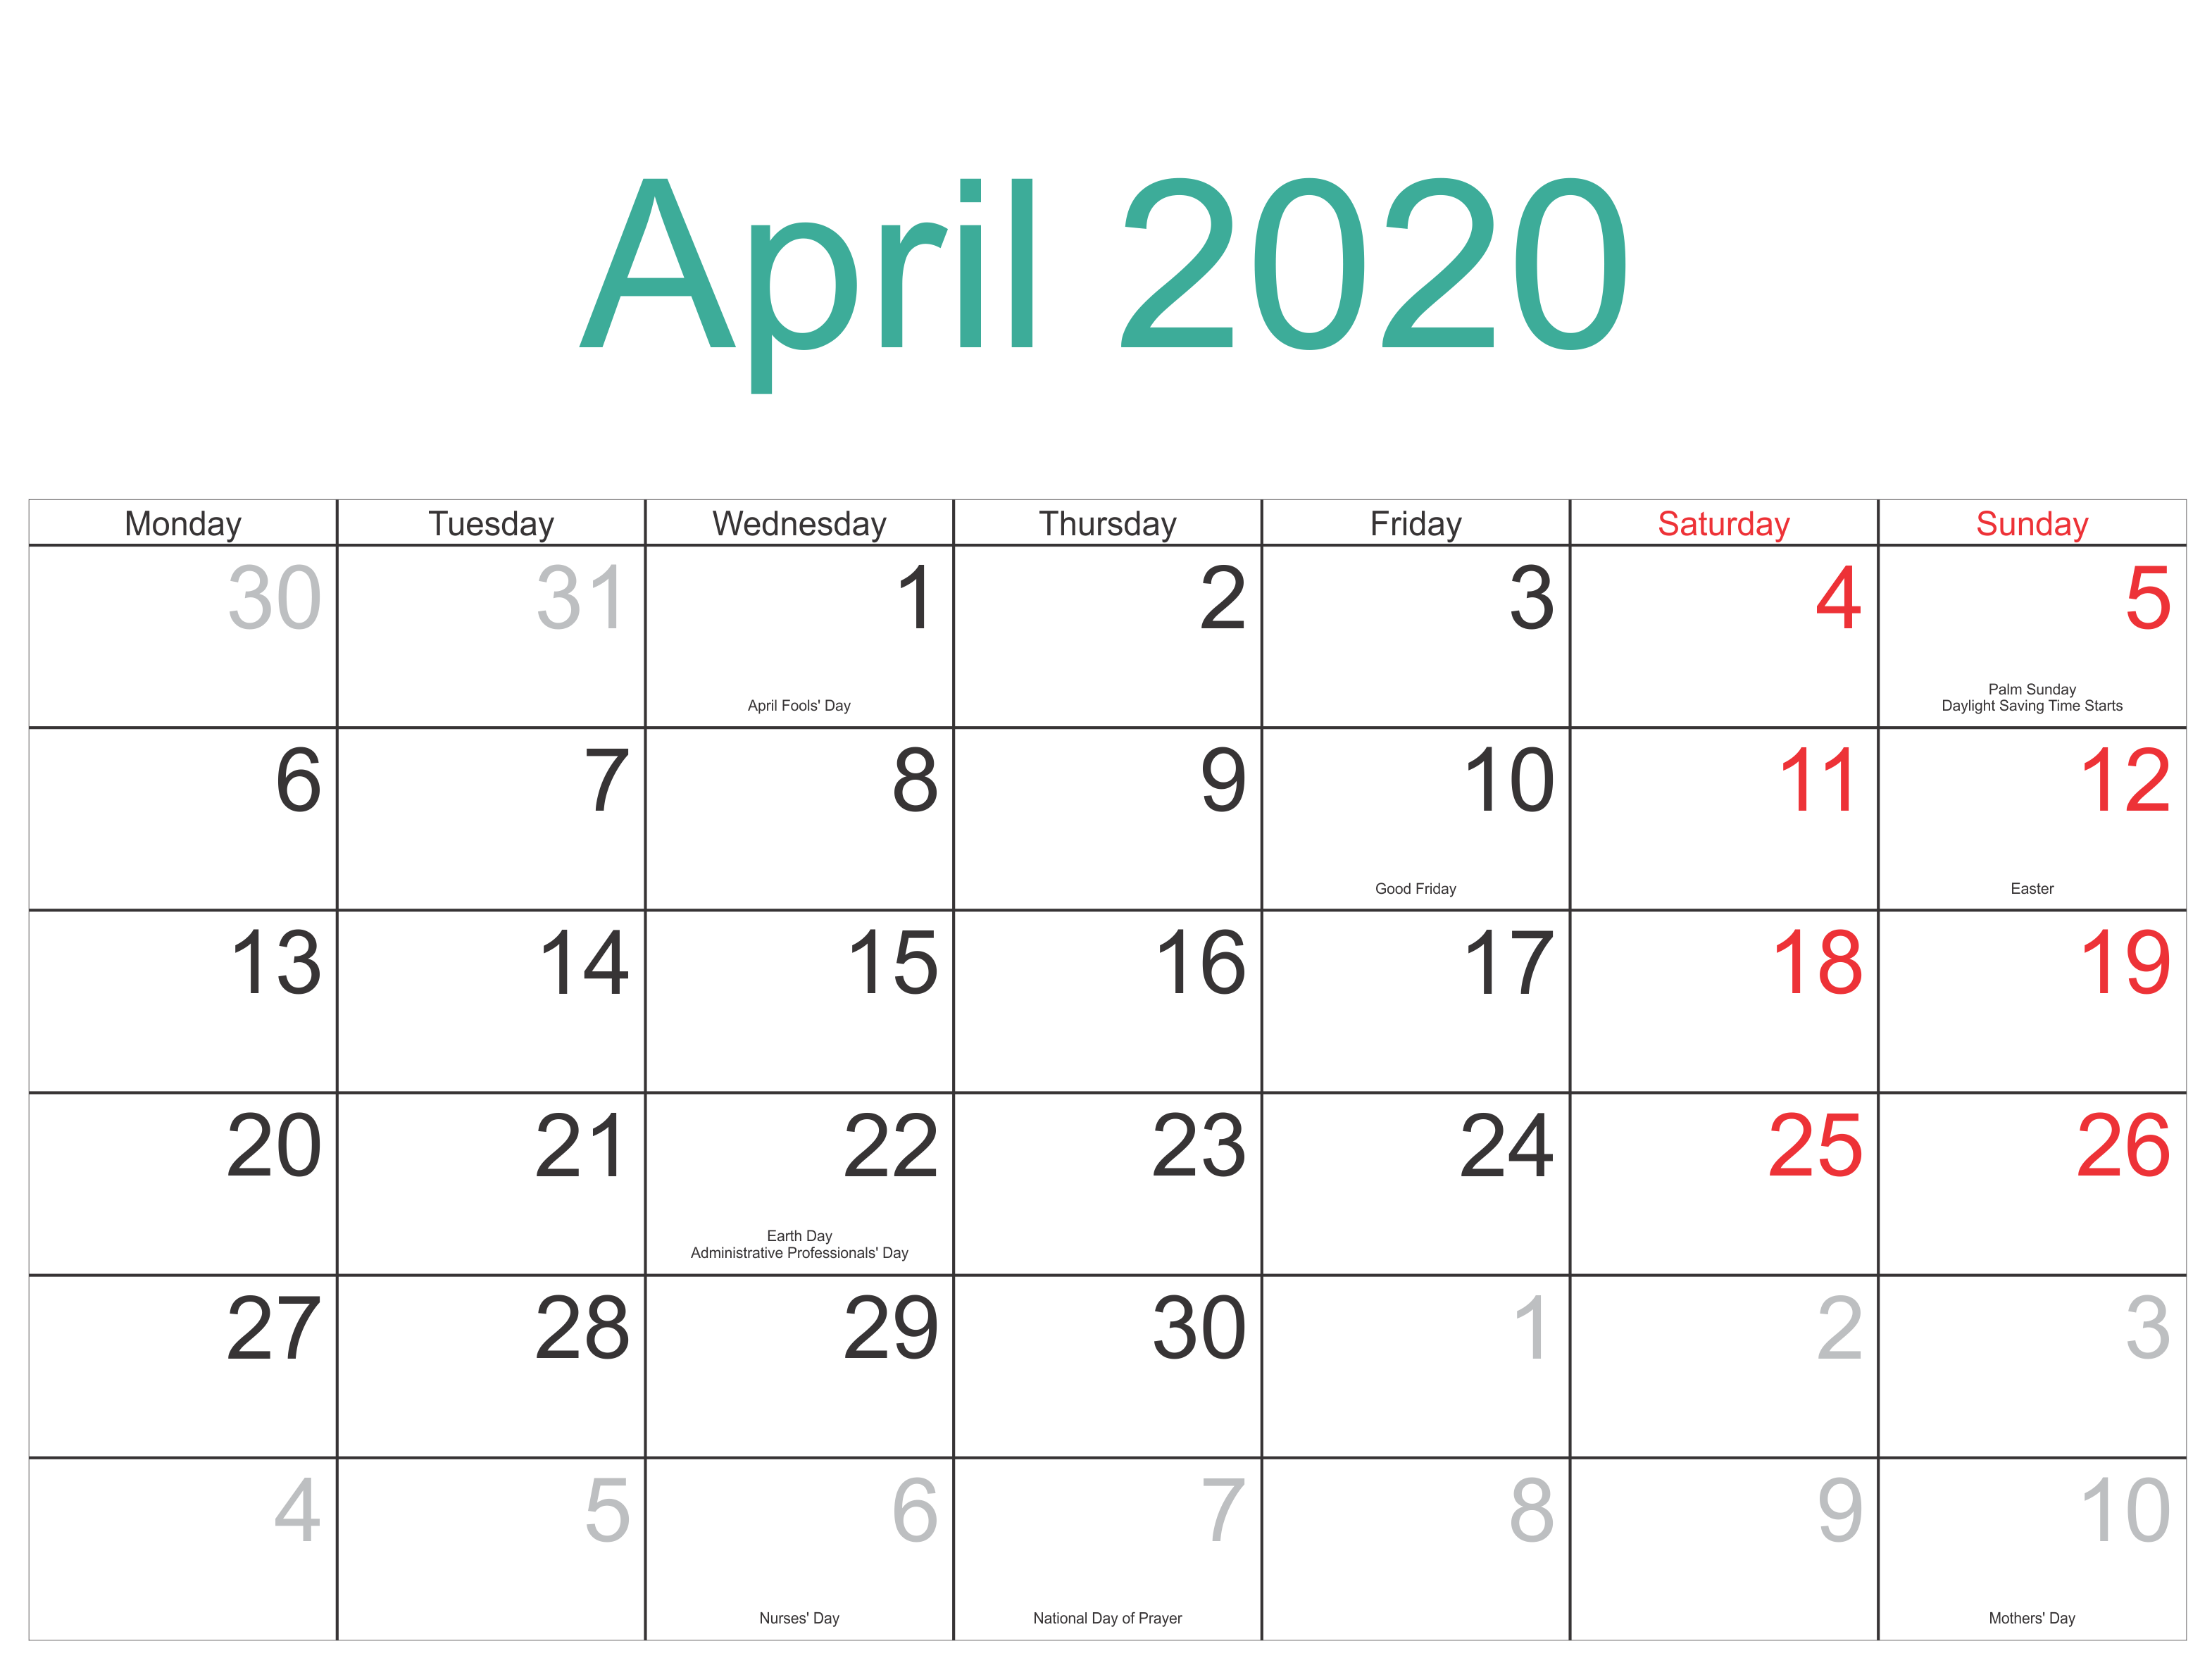 April 2020 Holidays Calendar